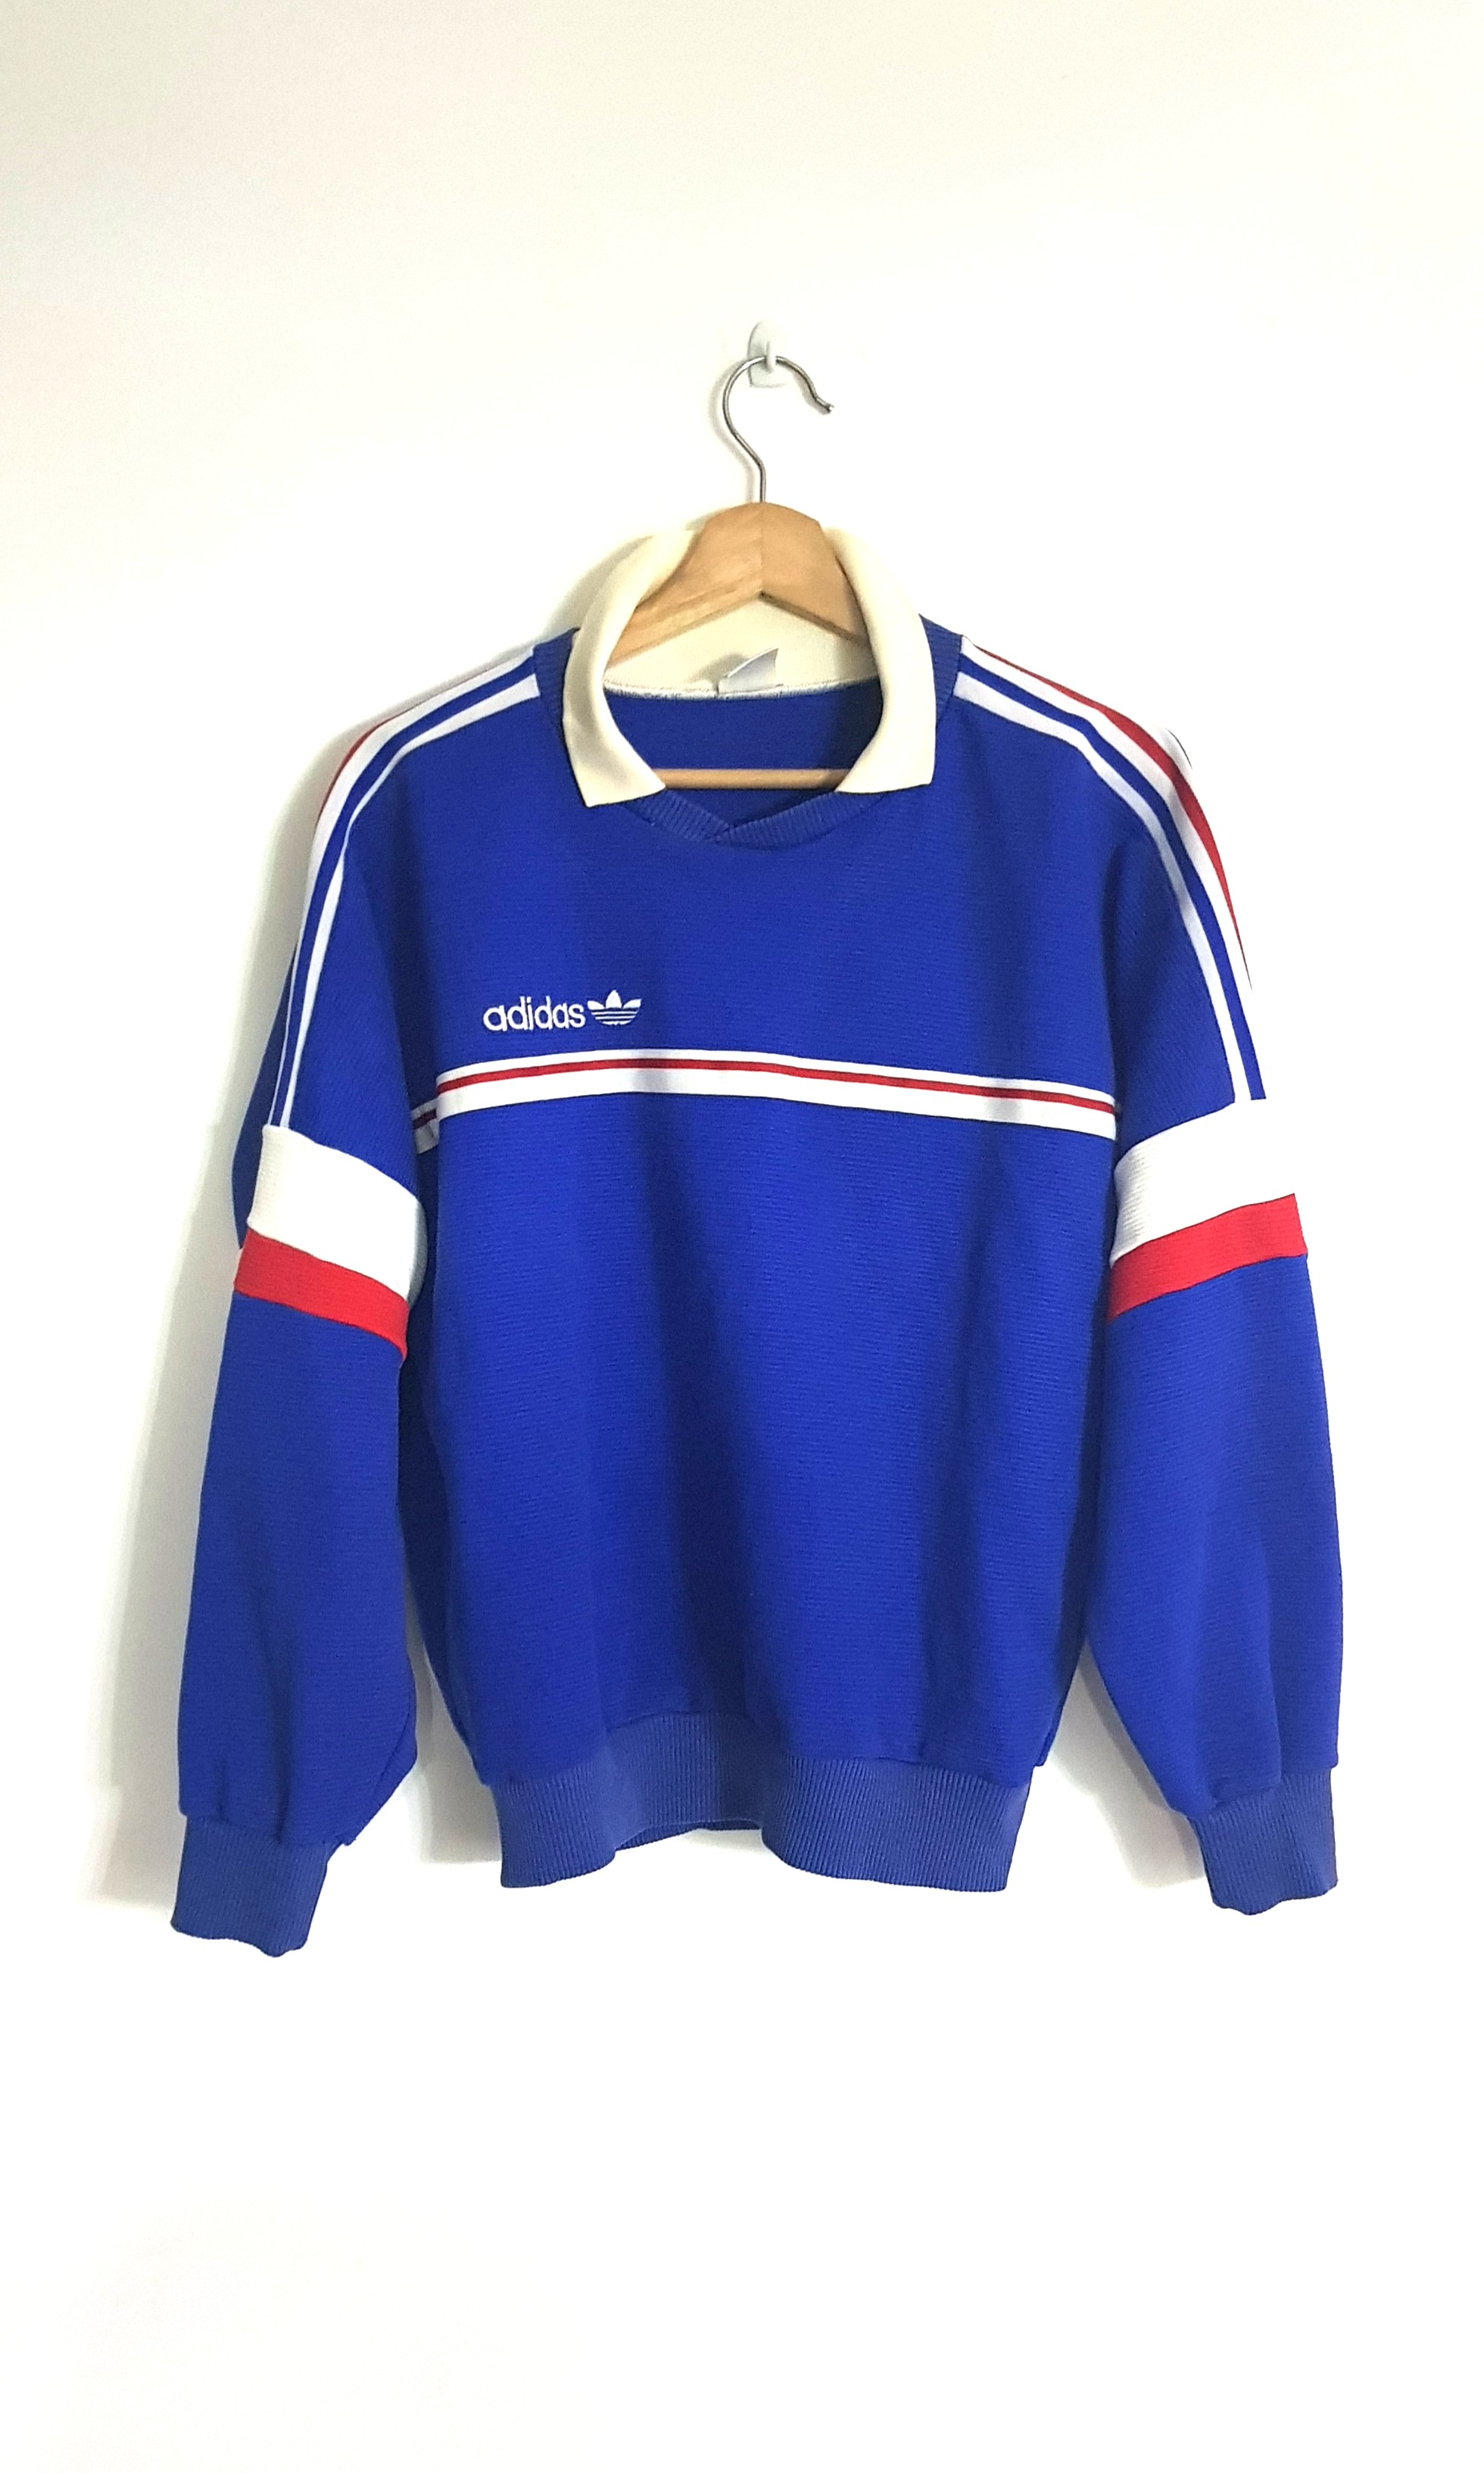 Carousell Sweatshirt On Men's Tops Adidas Fashion Vintage Clothes RxBq4w65